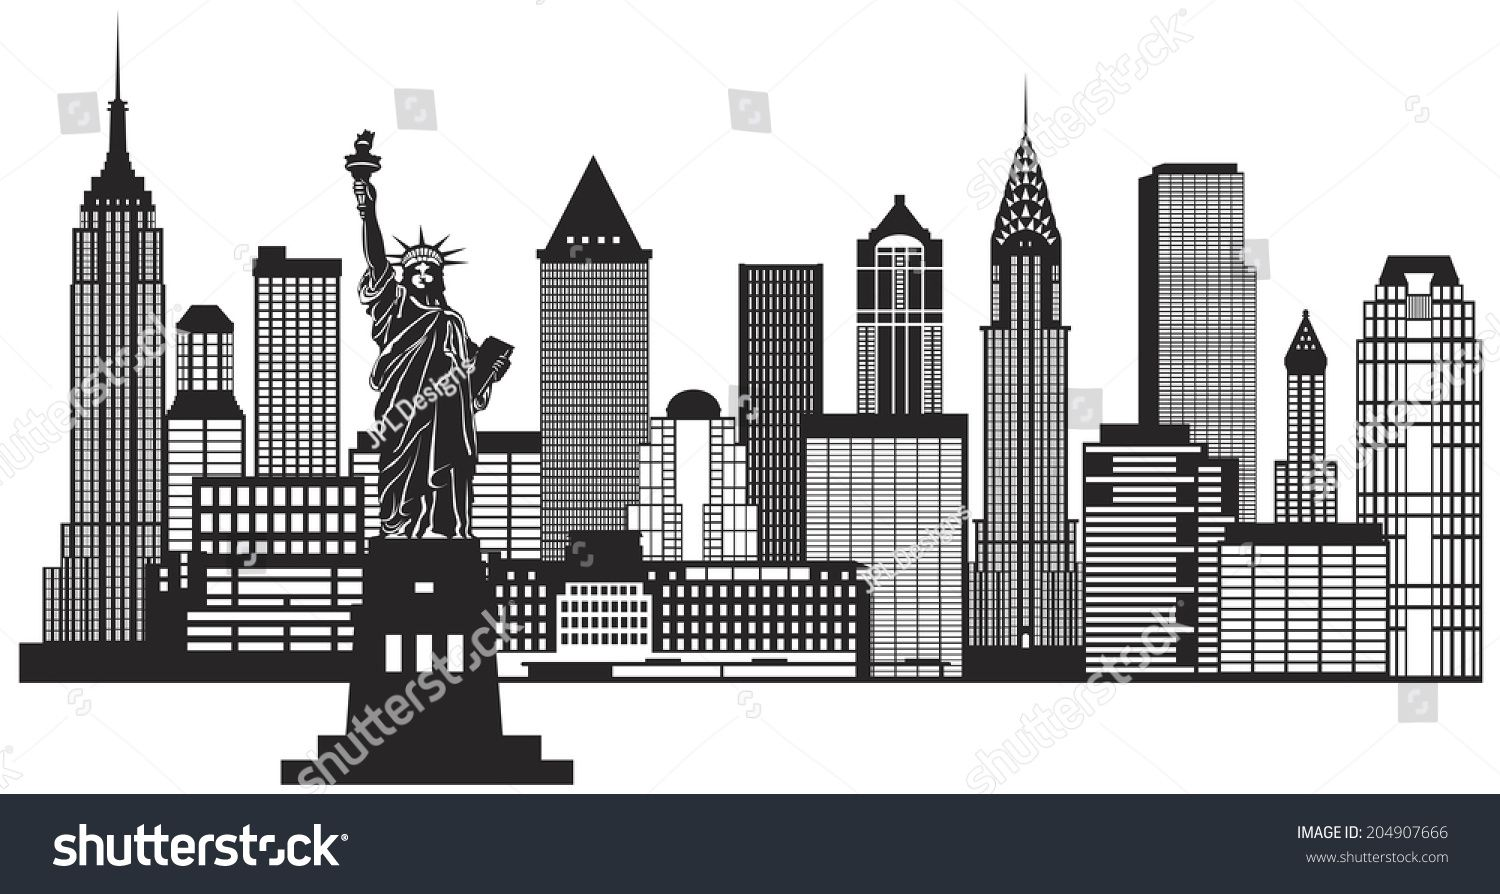 New York City Skyline With Statue Of Liberty Black And White